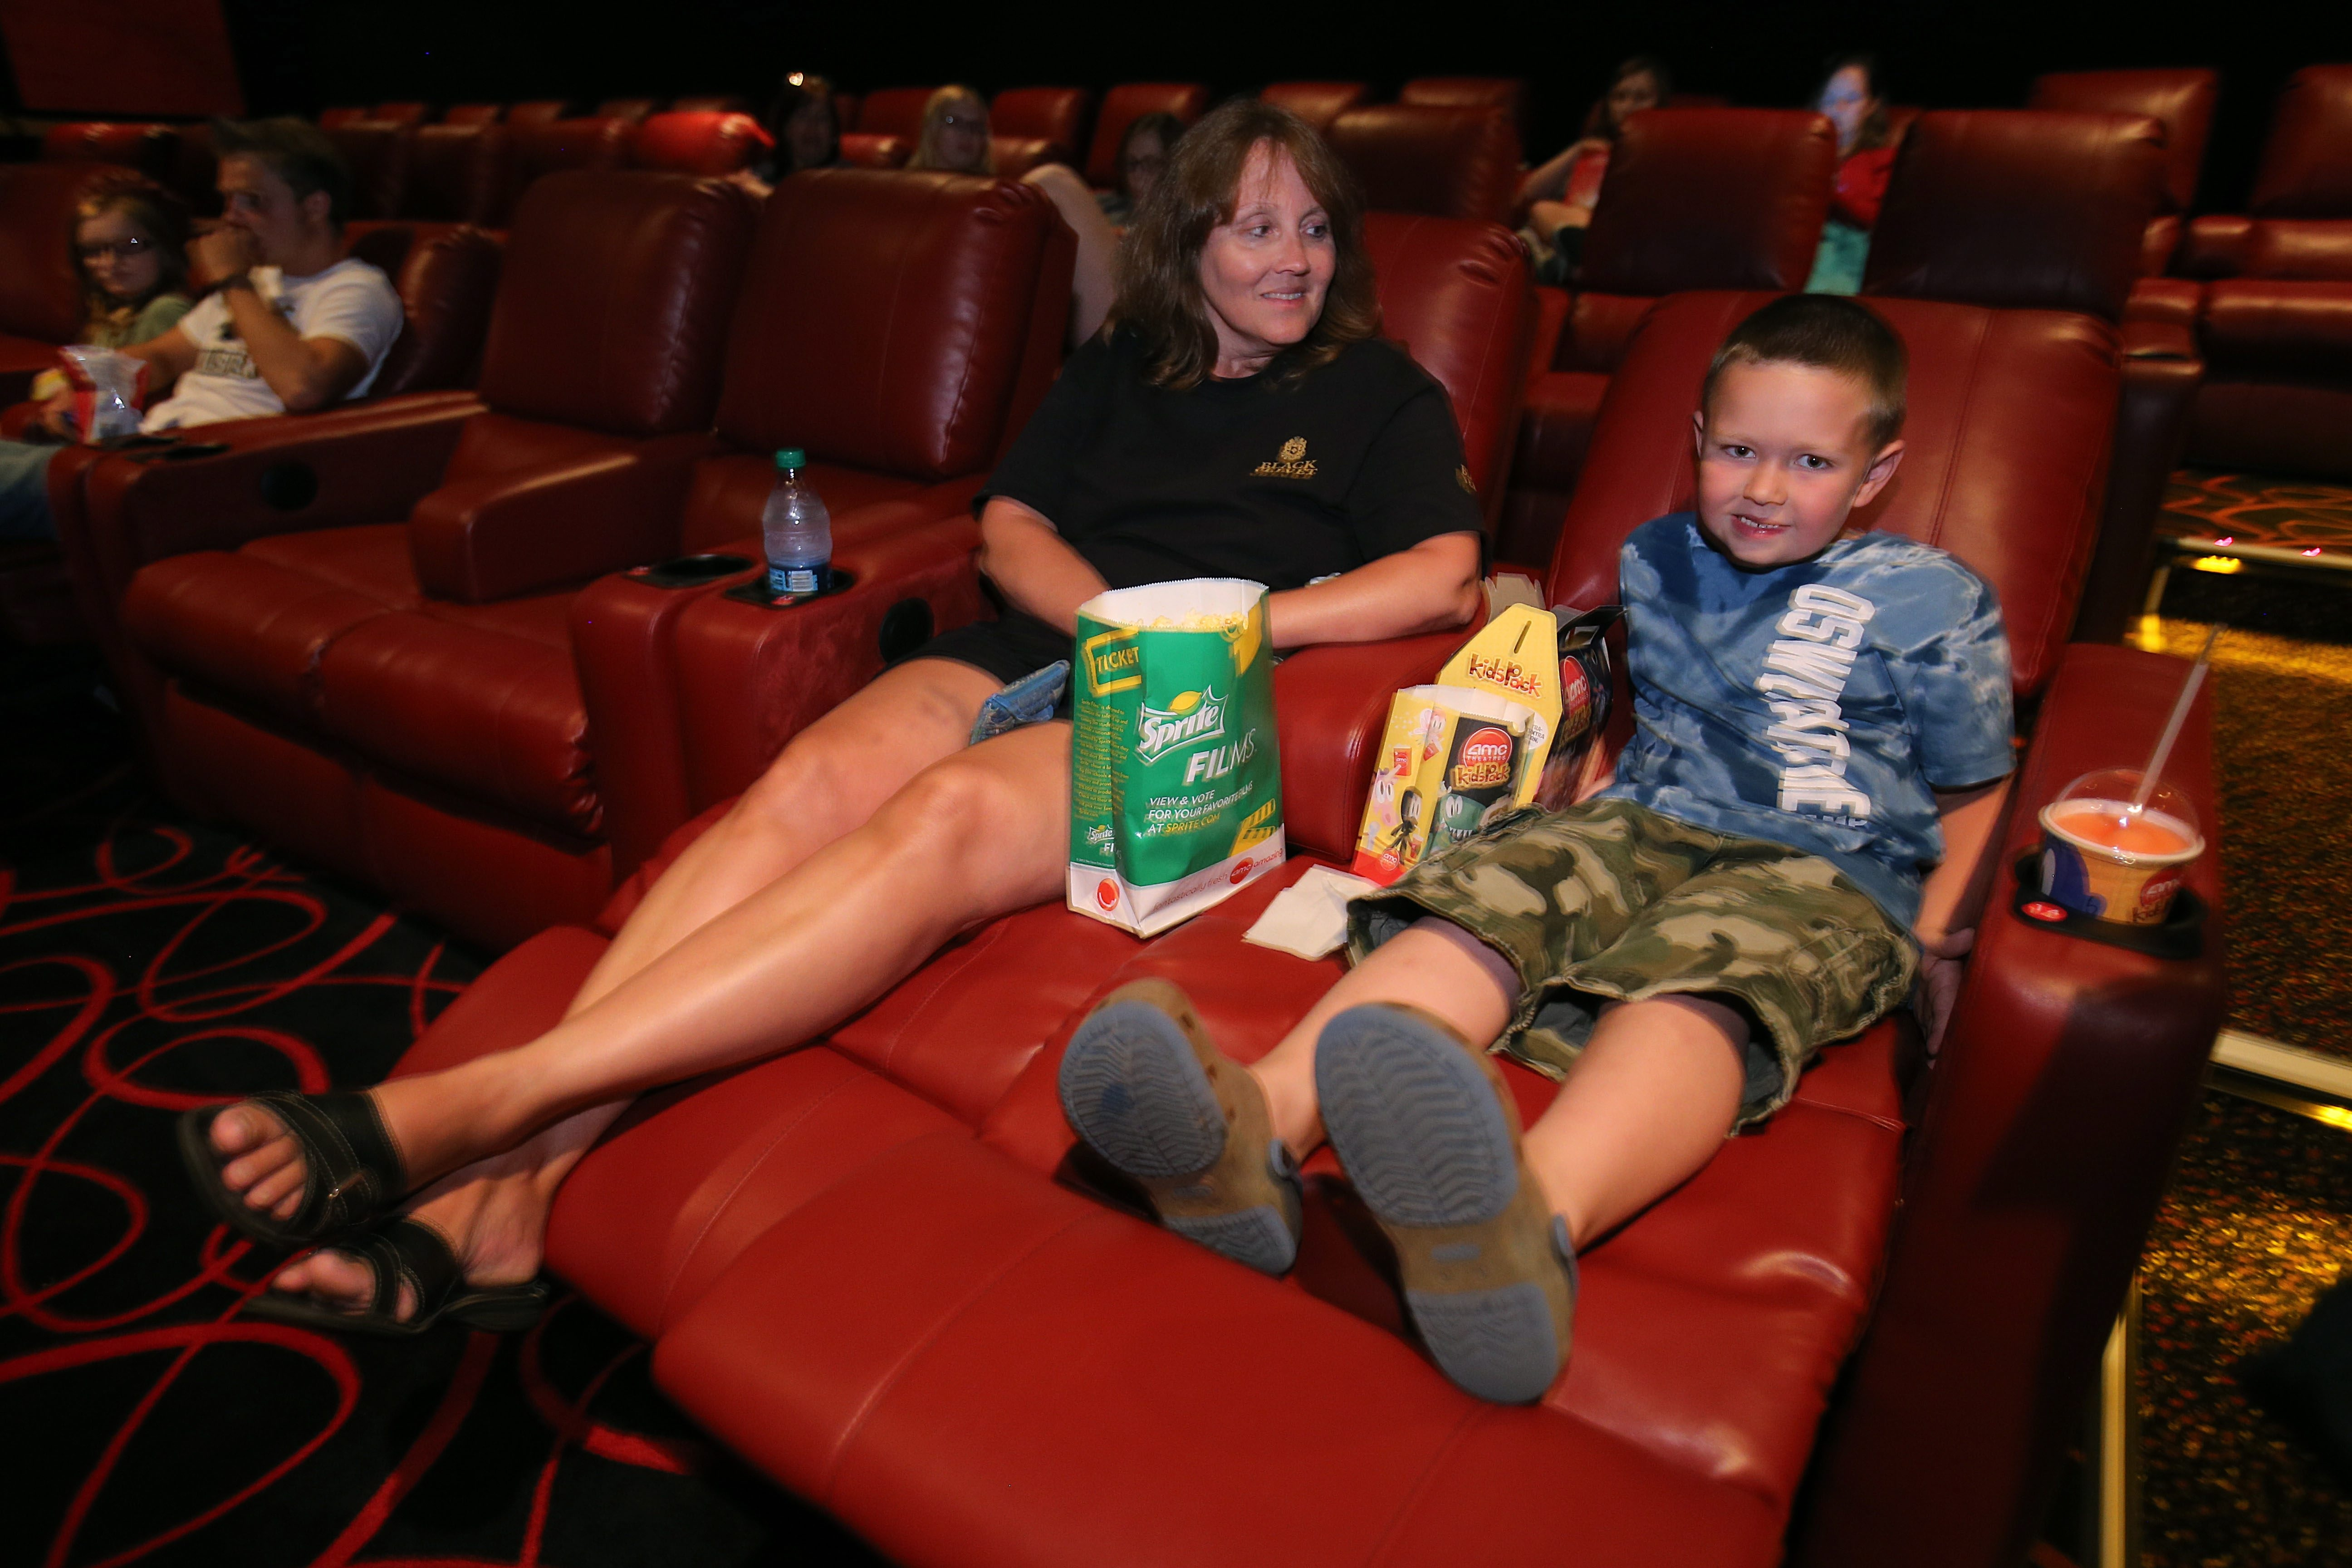 Amc Theaters With Reclining Seats Nyc Review Home Decor